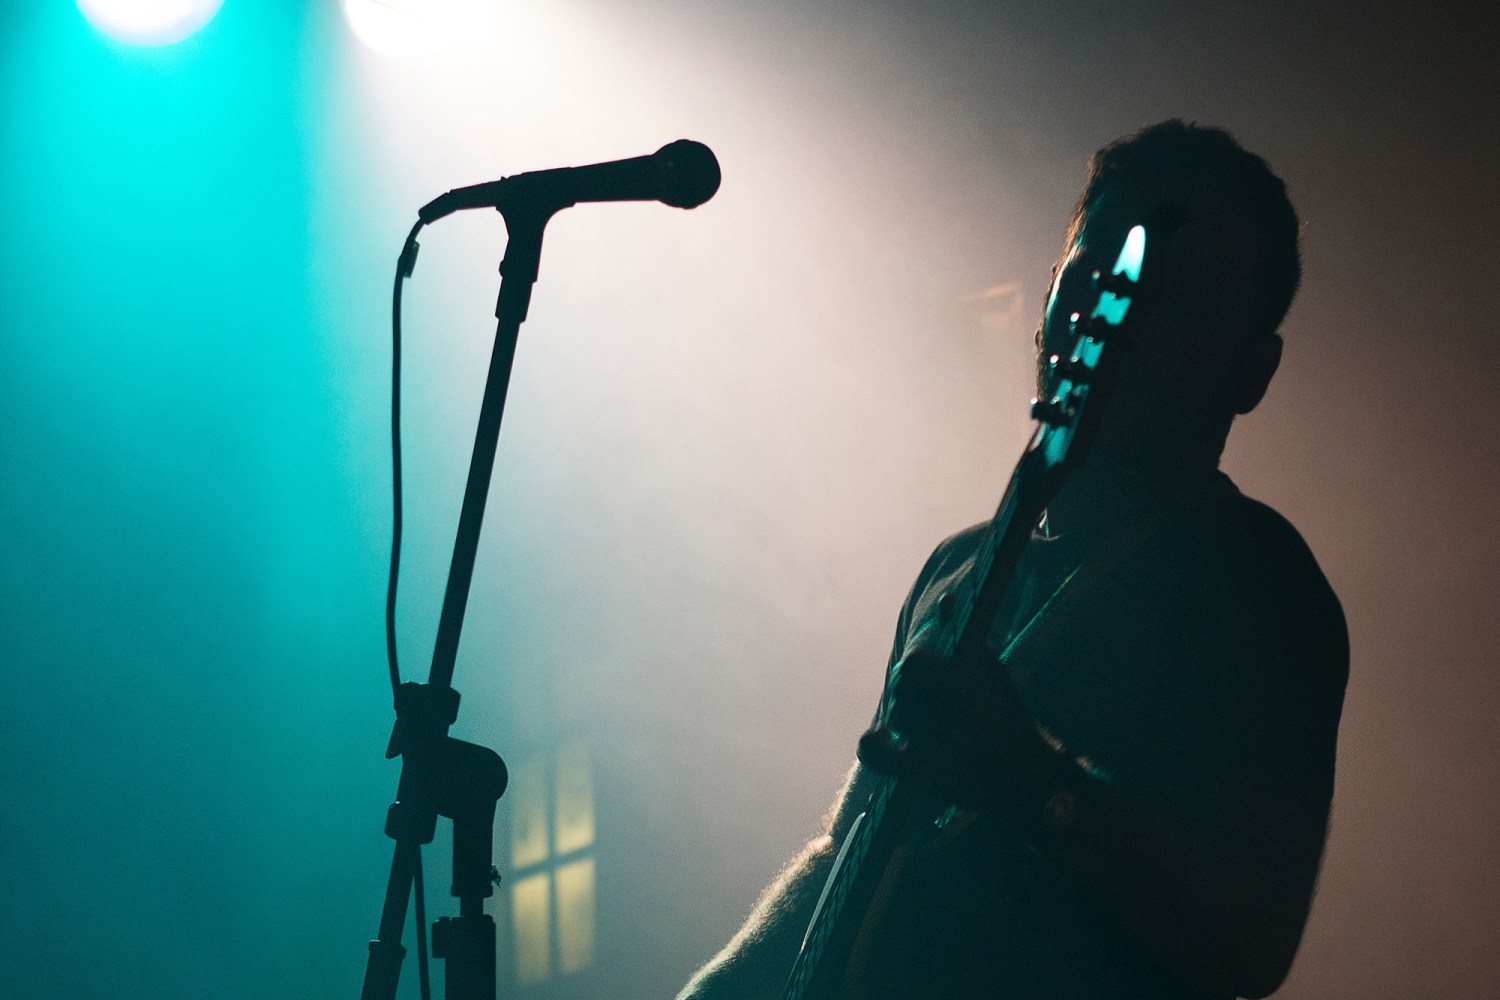 Bassist performing on stage